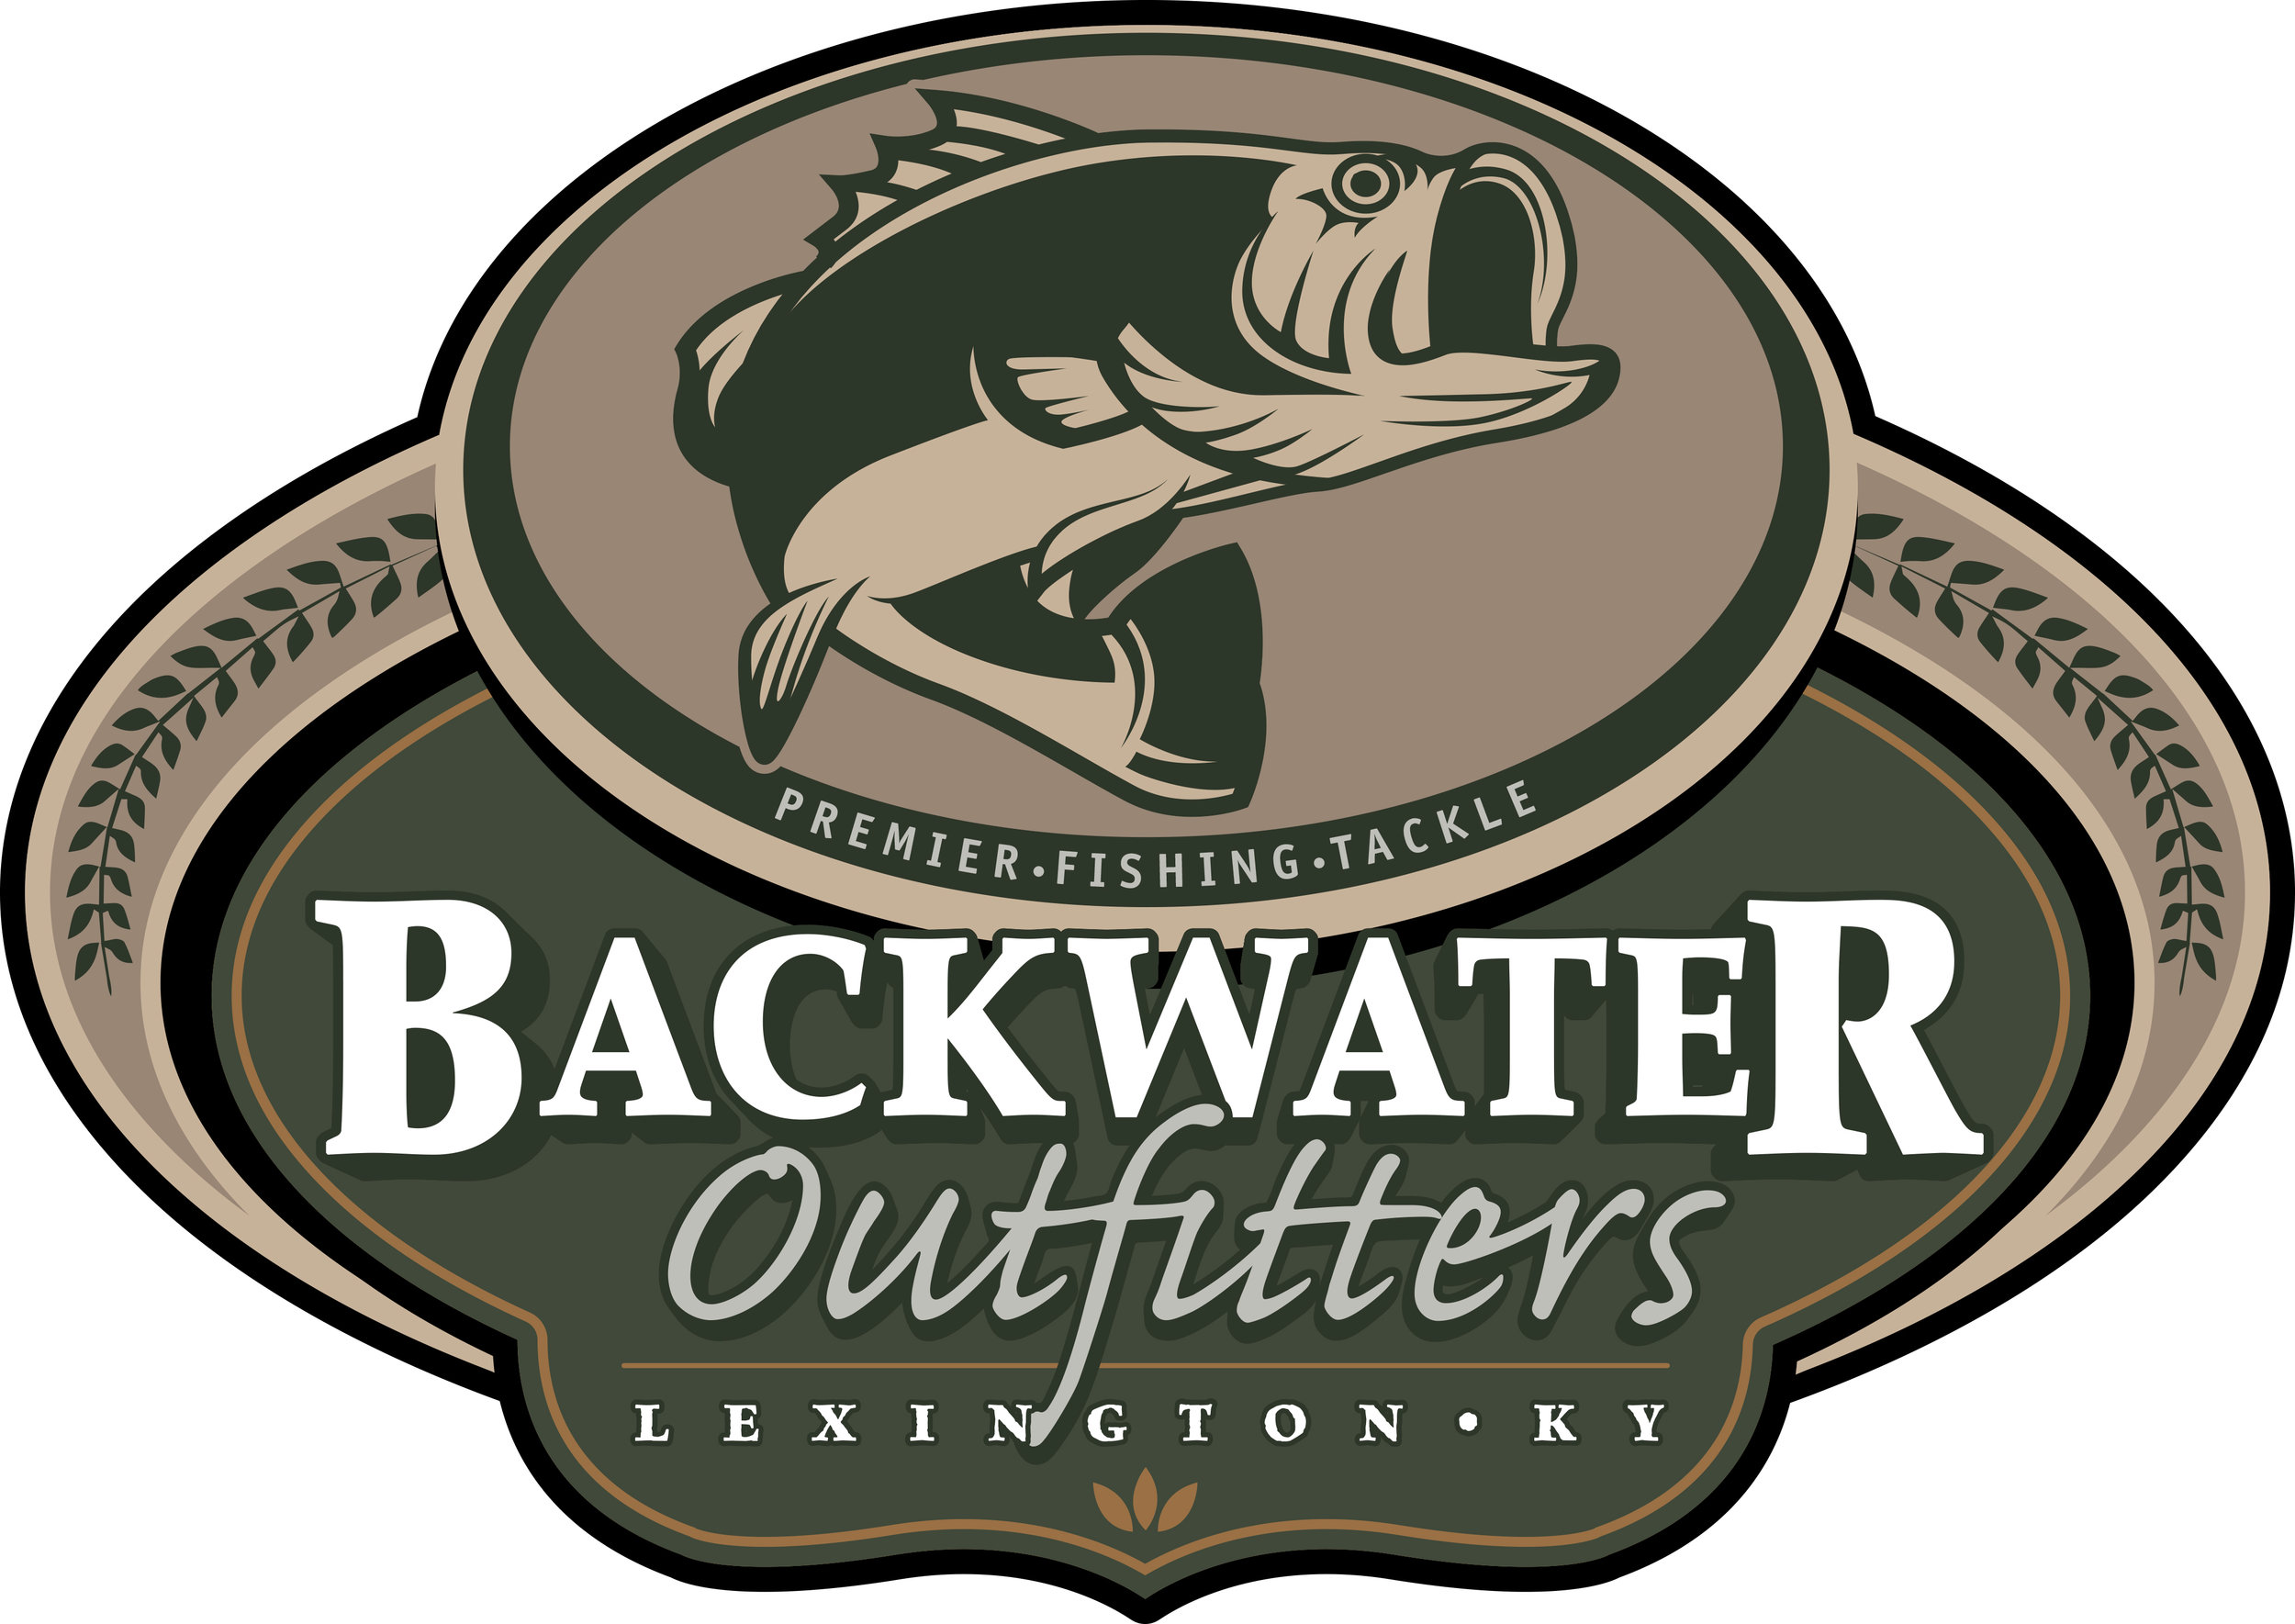 BackwaterOutfitters-HiRes.jpg